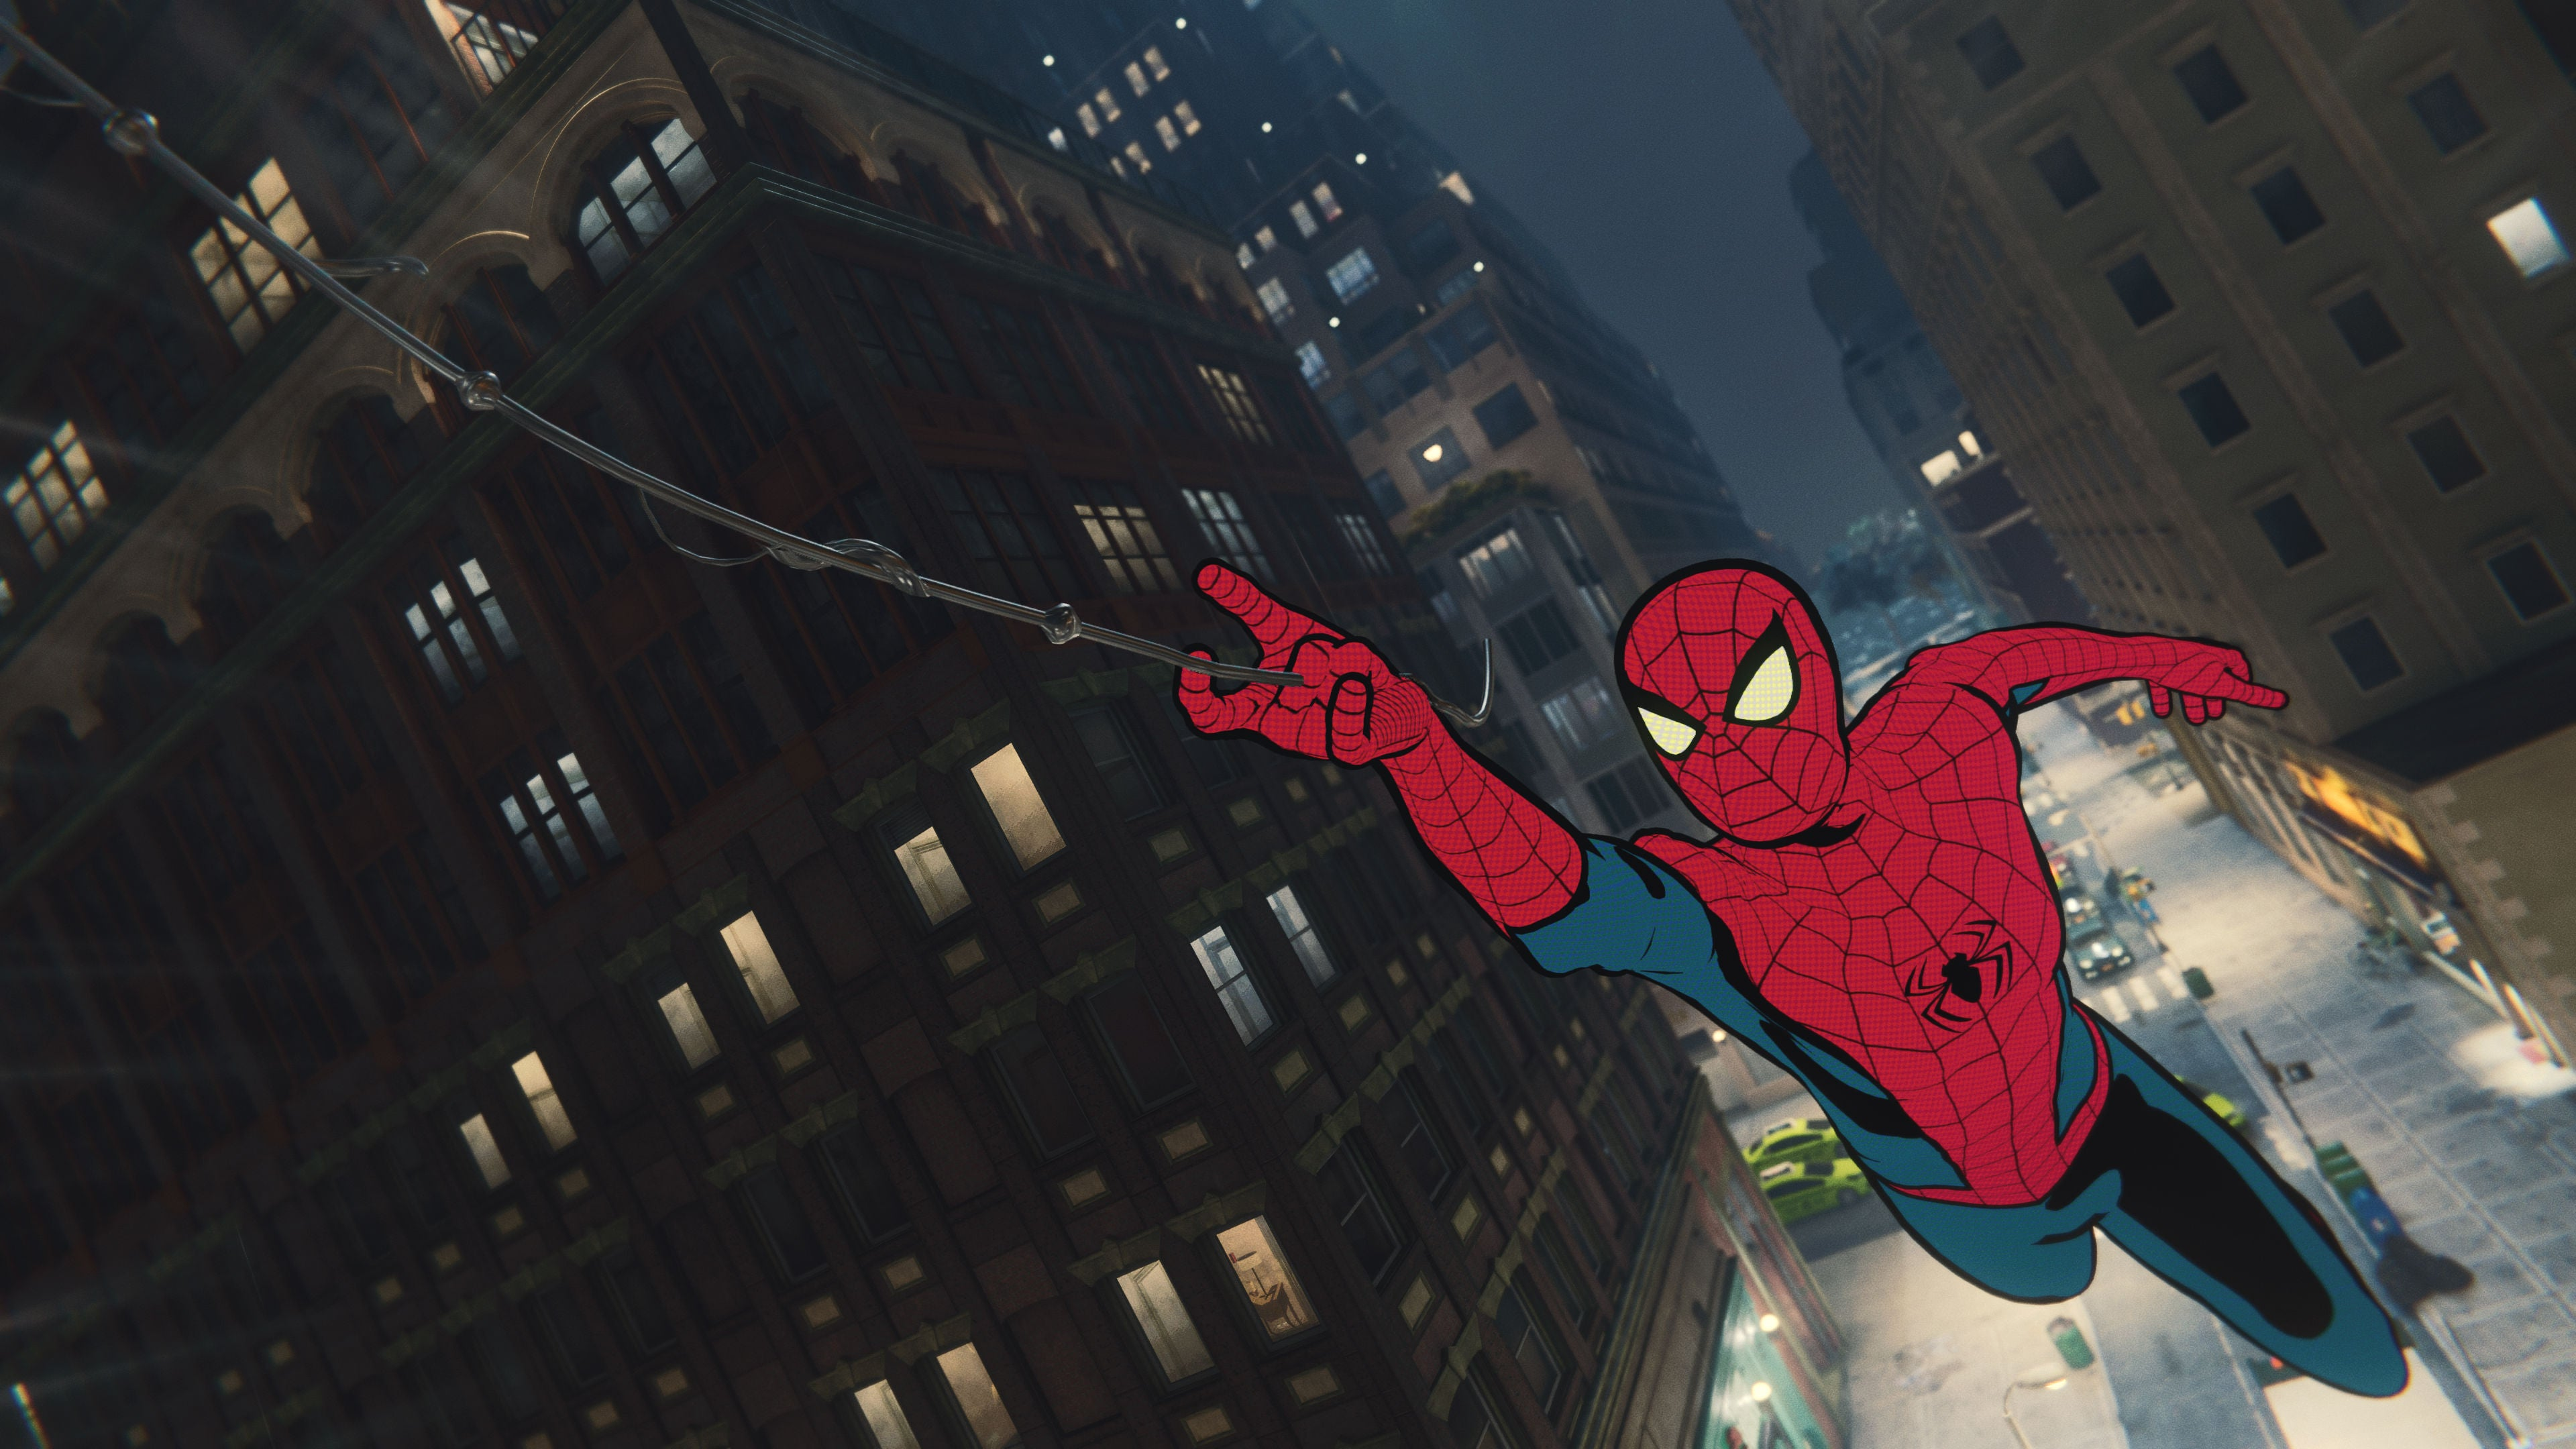 Spider Man PS4 Comic Suit Is Our Favorite Part of the Game